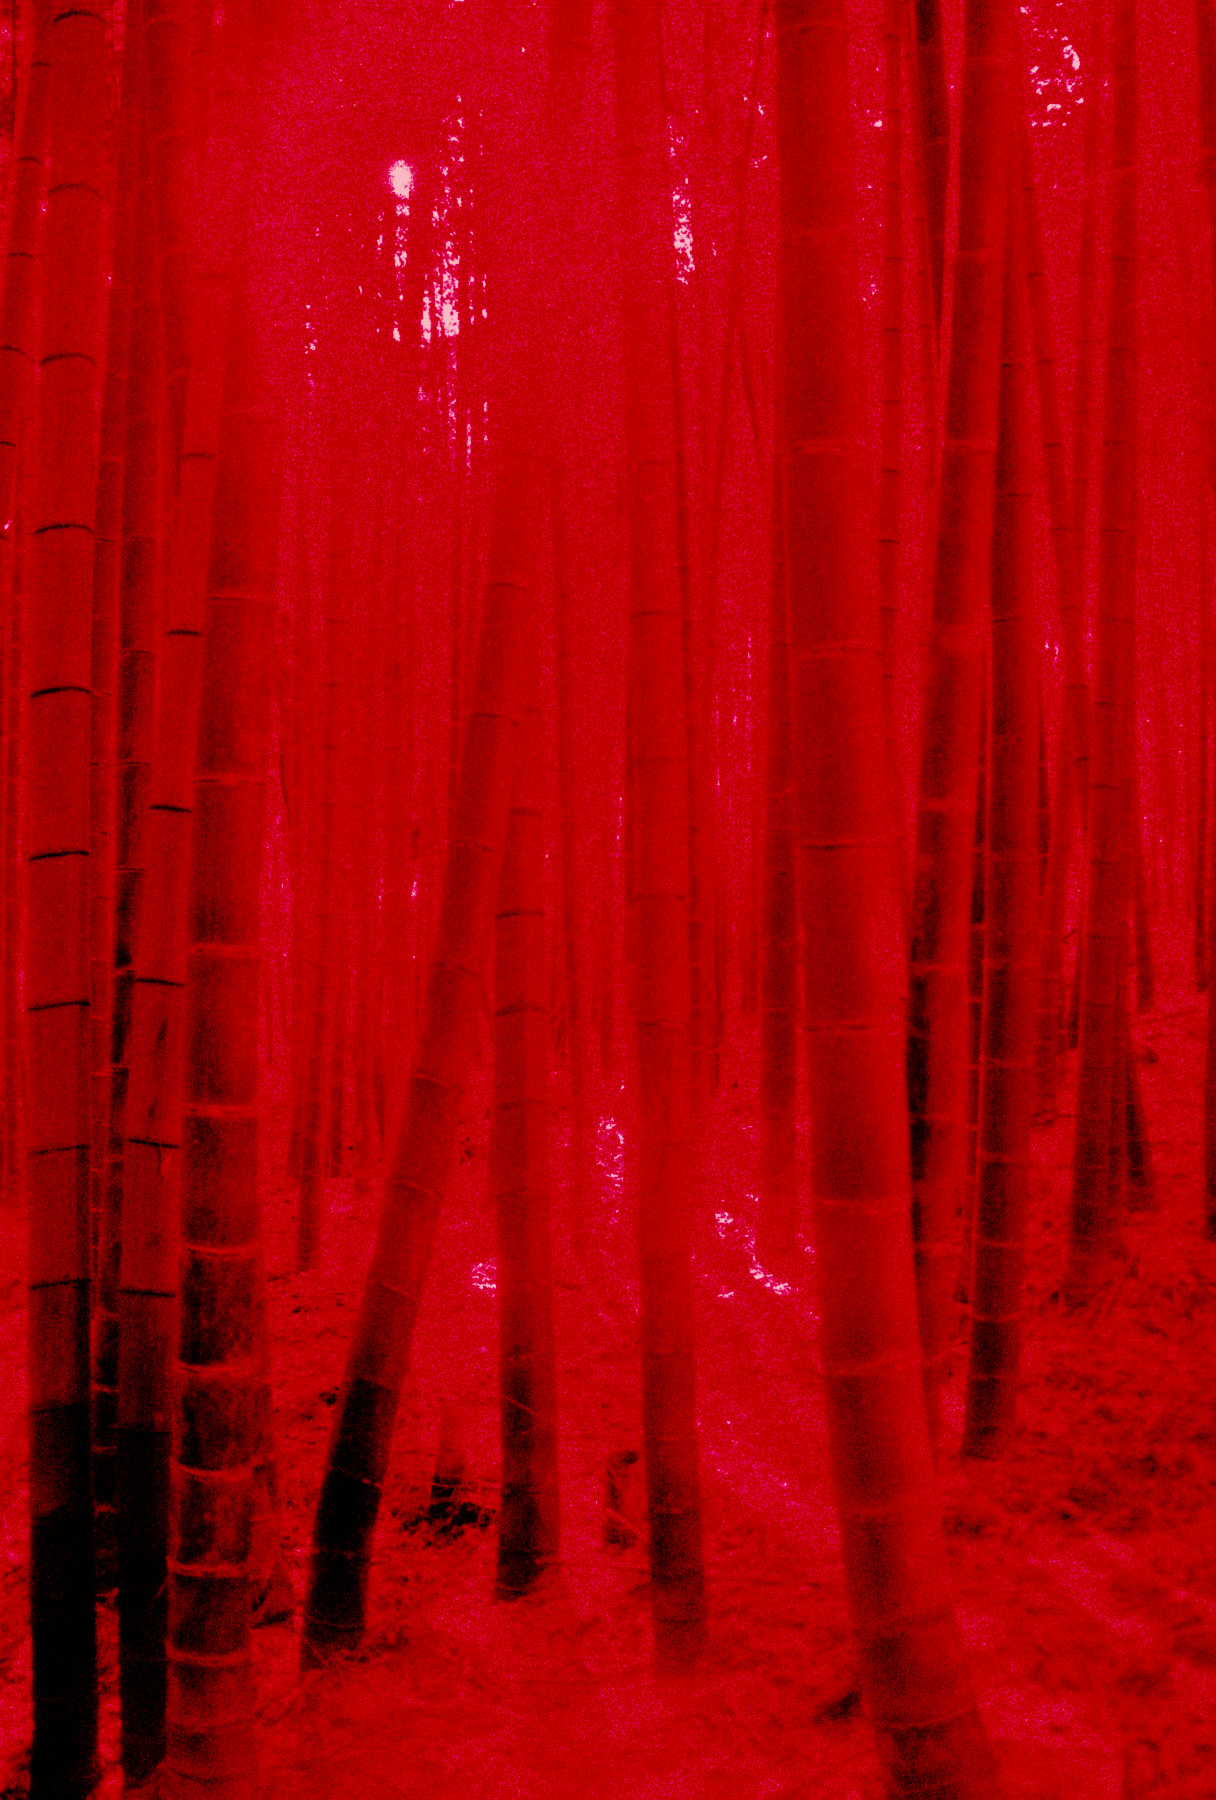 Light Patched Bamboo Forest | Canon EOS 10QD | 35-80mm | Teresa Suratos